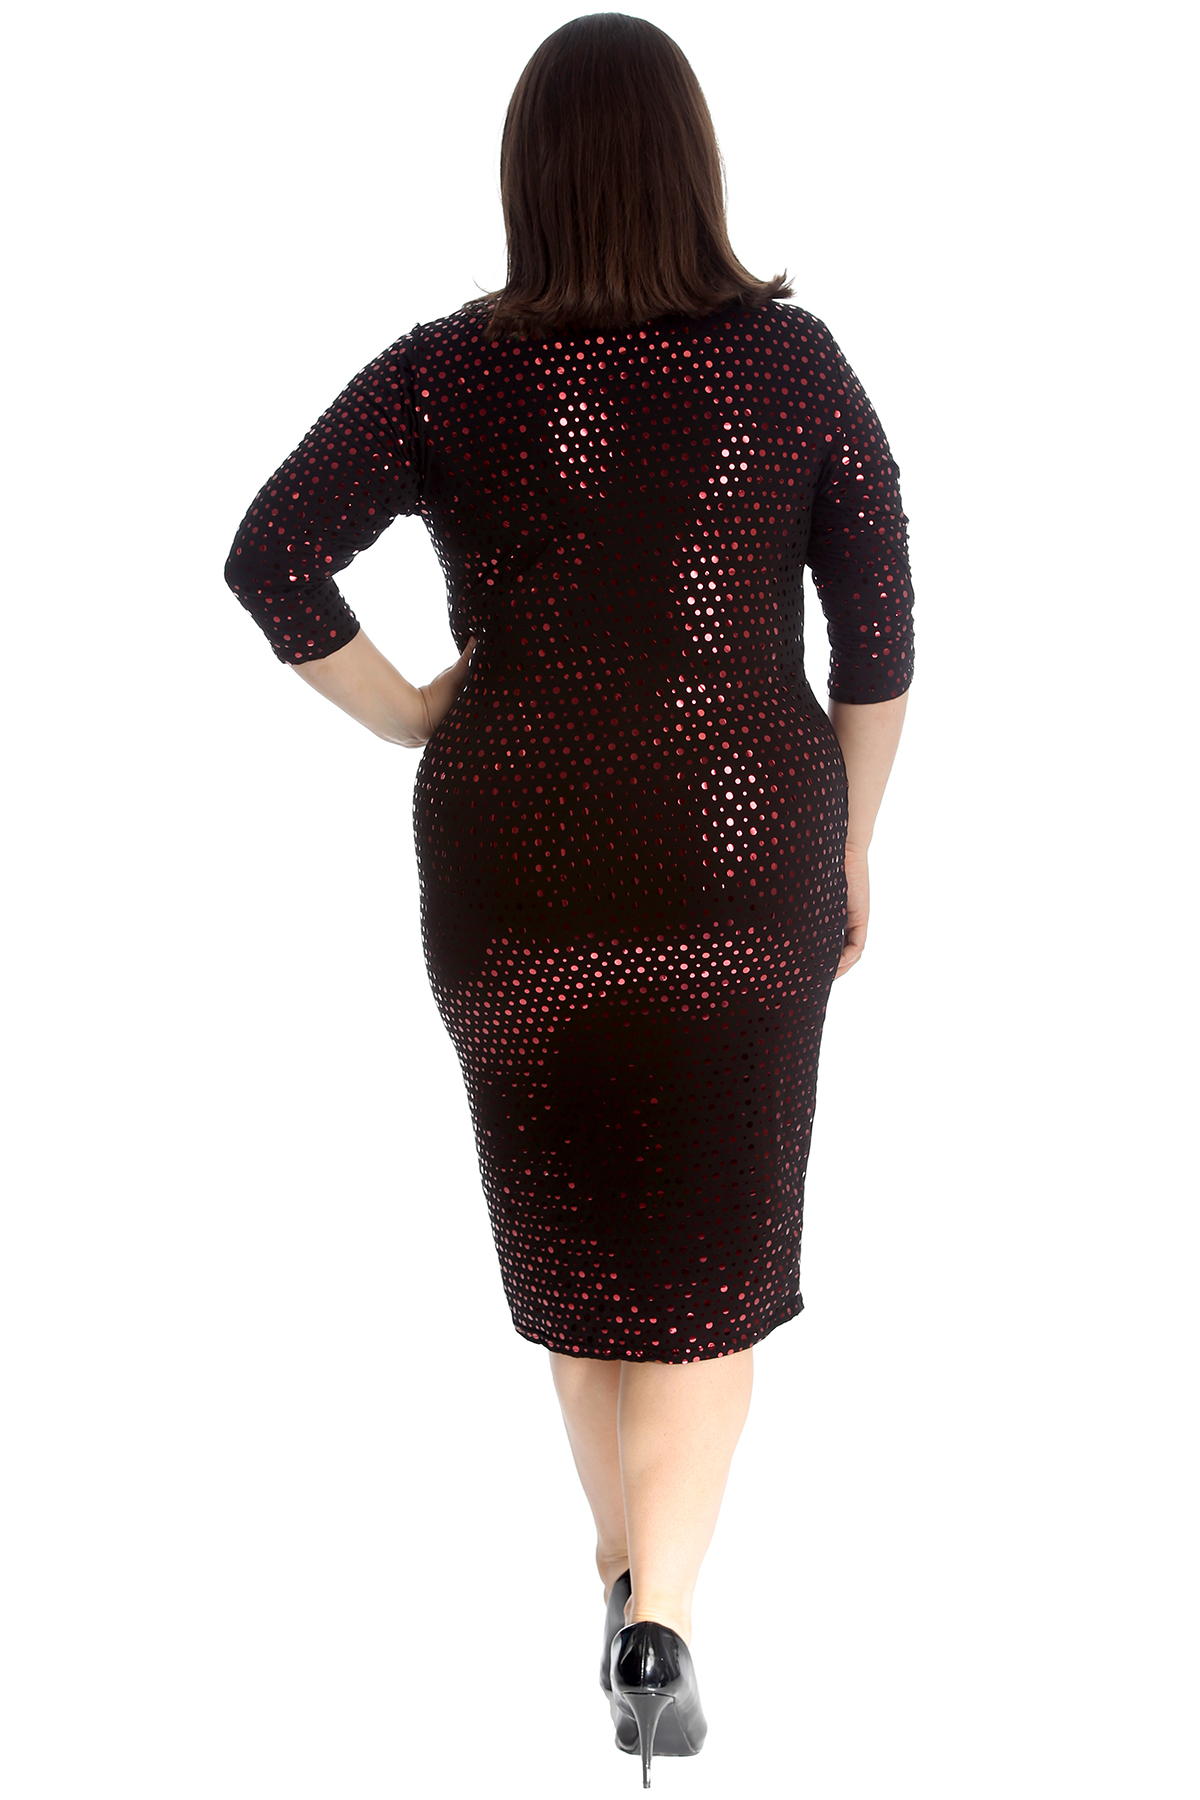 New Ladies Plus Size Womens Dress Polka Dot Foil Bodycon Midi Party Nouvelle